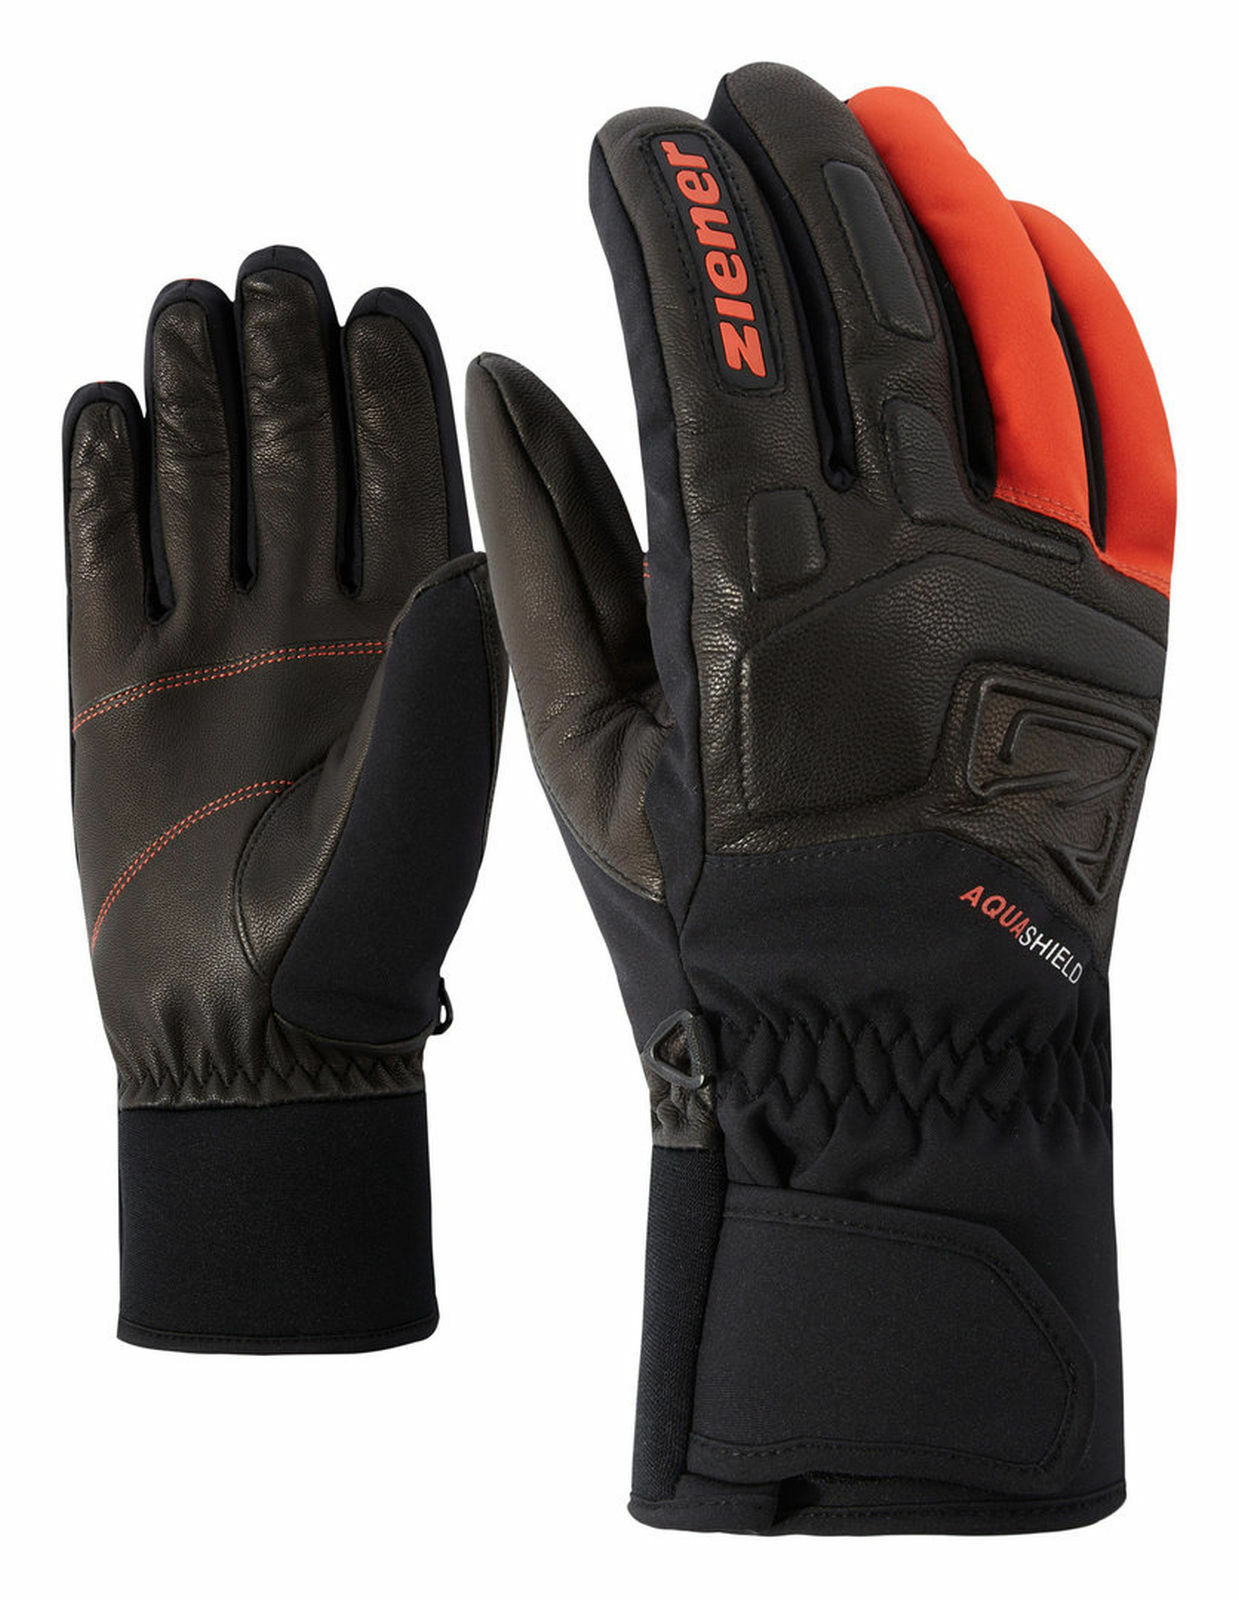 Ziener AS® Herren Skihandschuhe GLYXUS AS® Ziener glove schwarz Orange 54675e